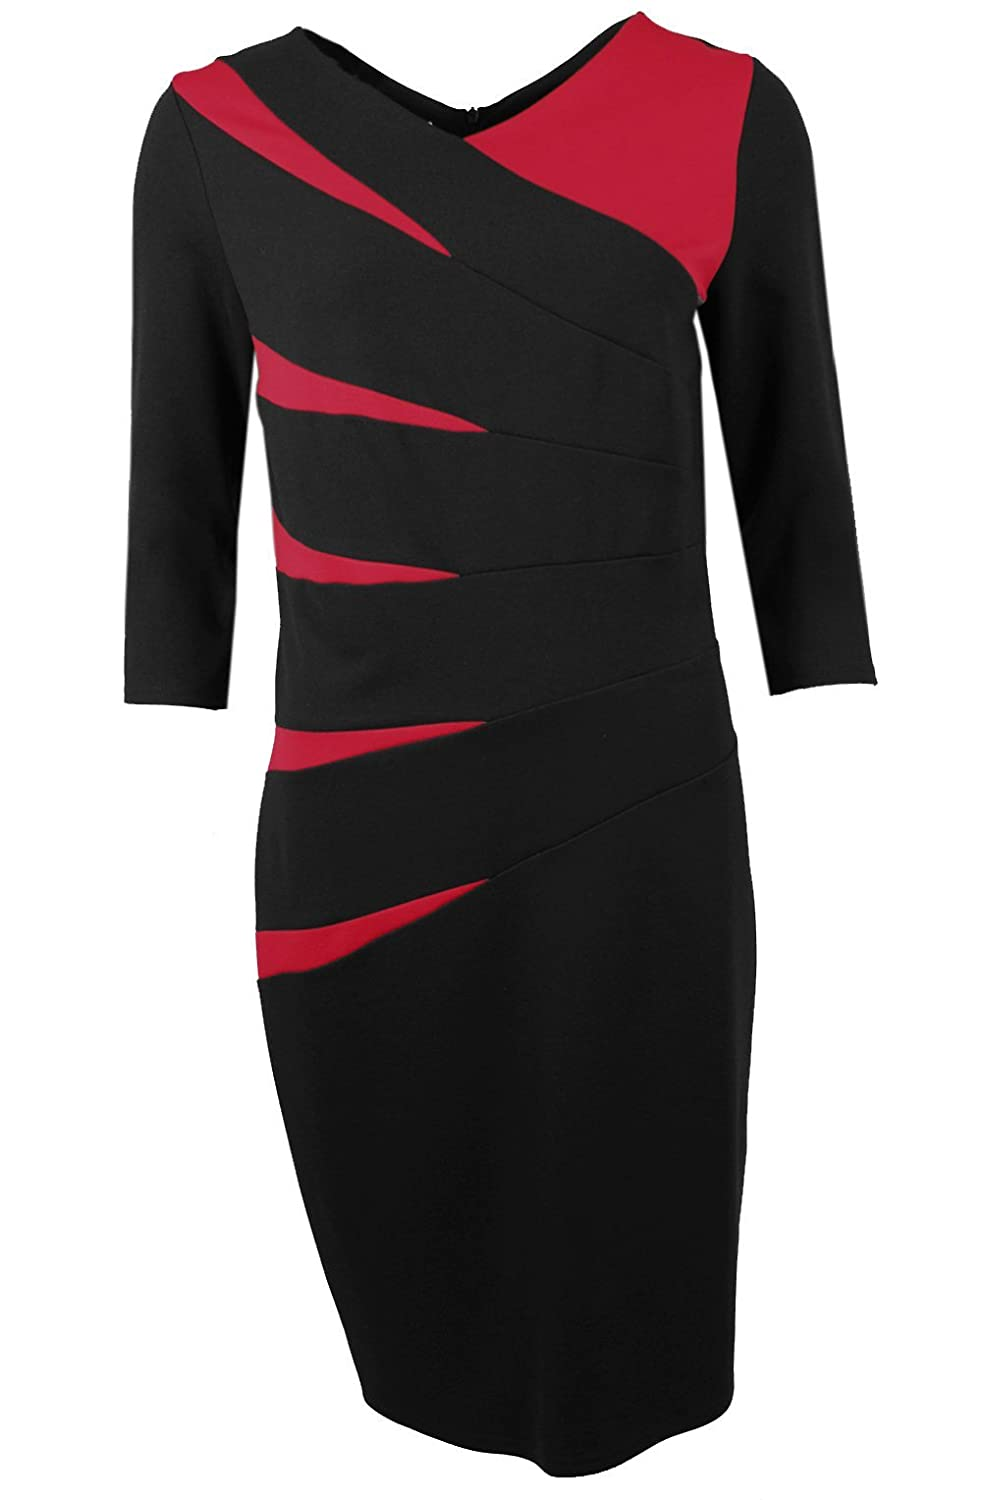 Steilmann Red & Black Paneled Dress